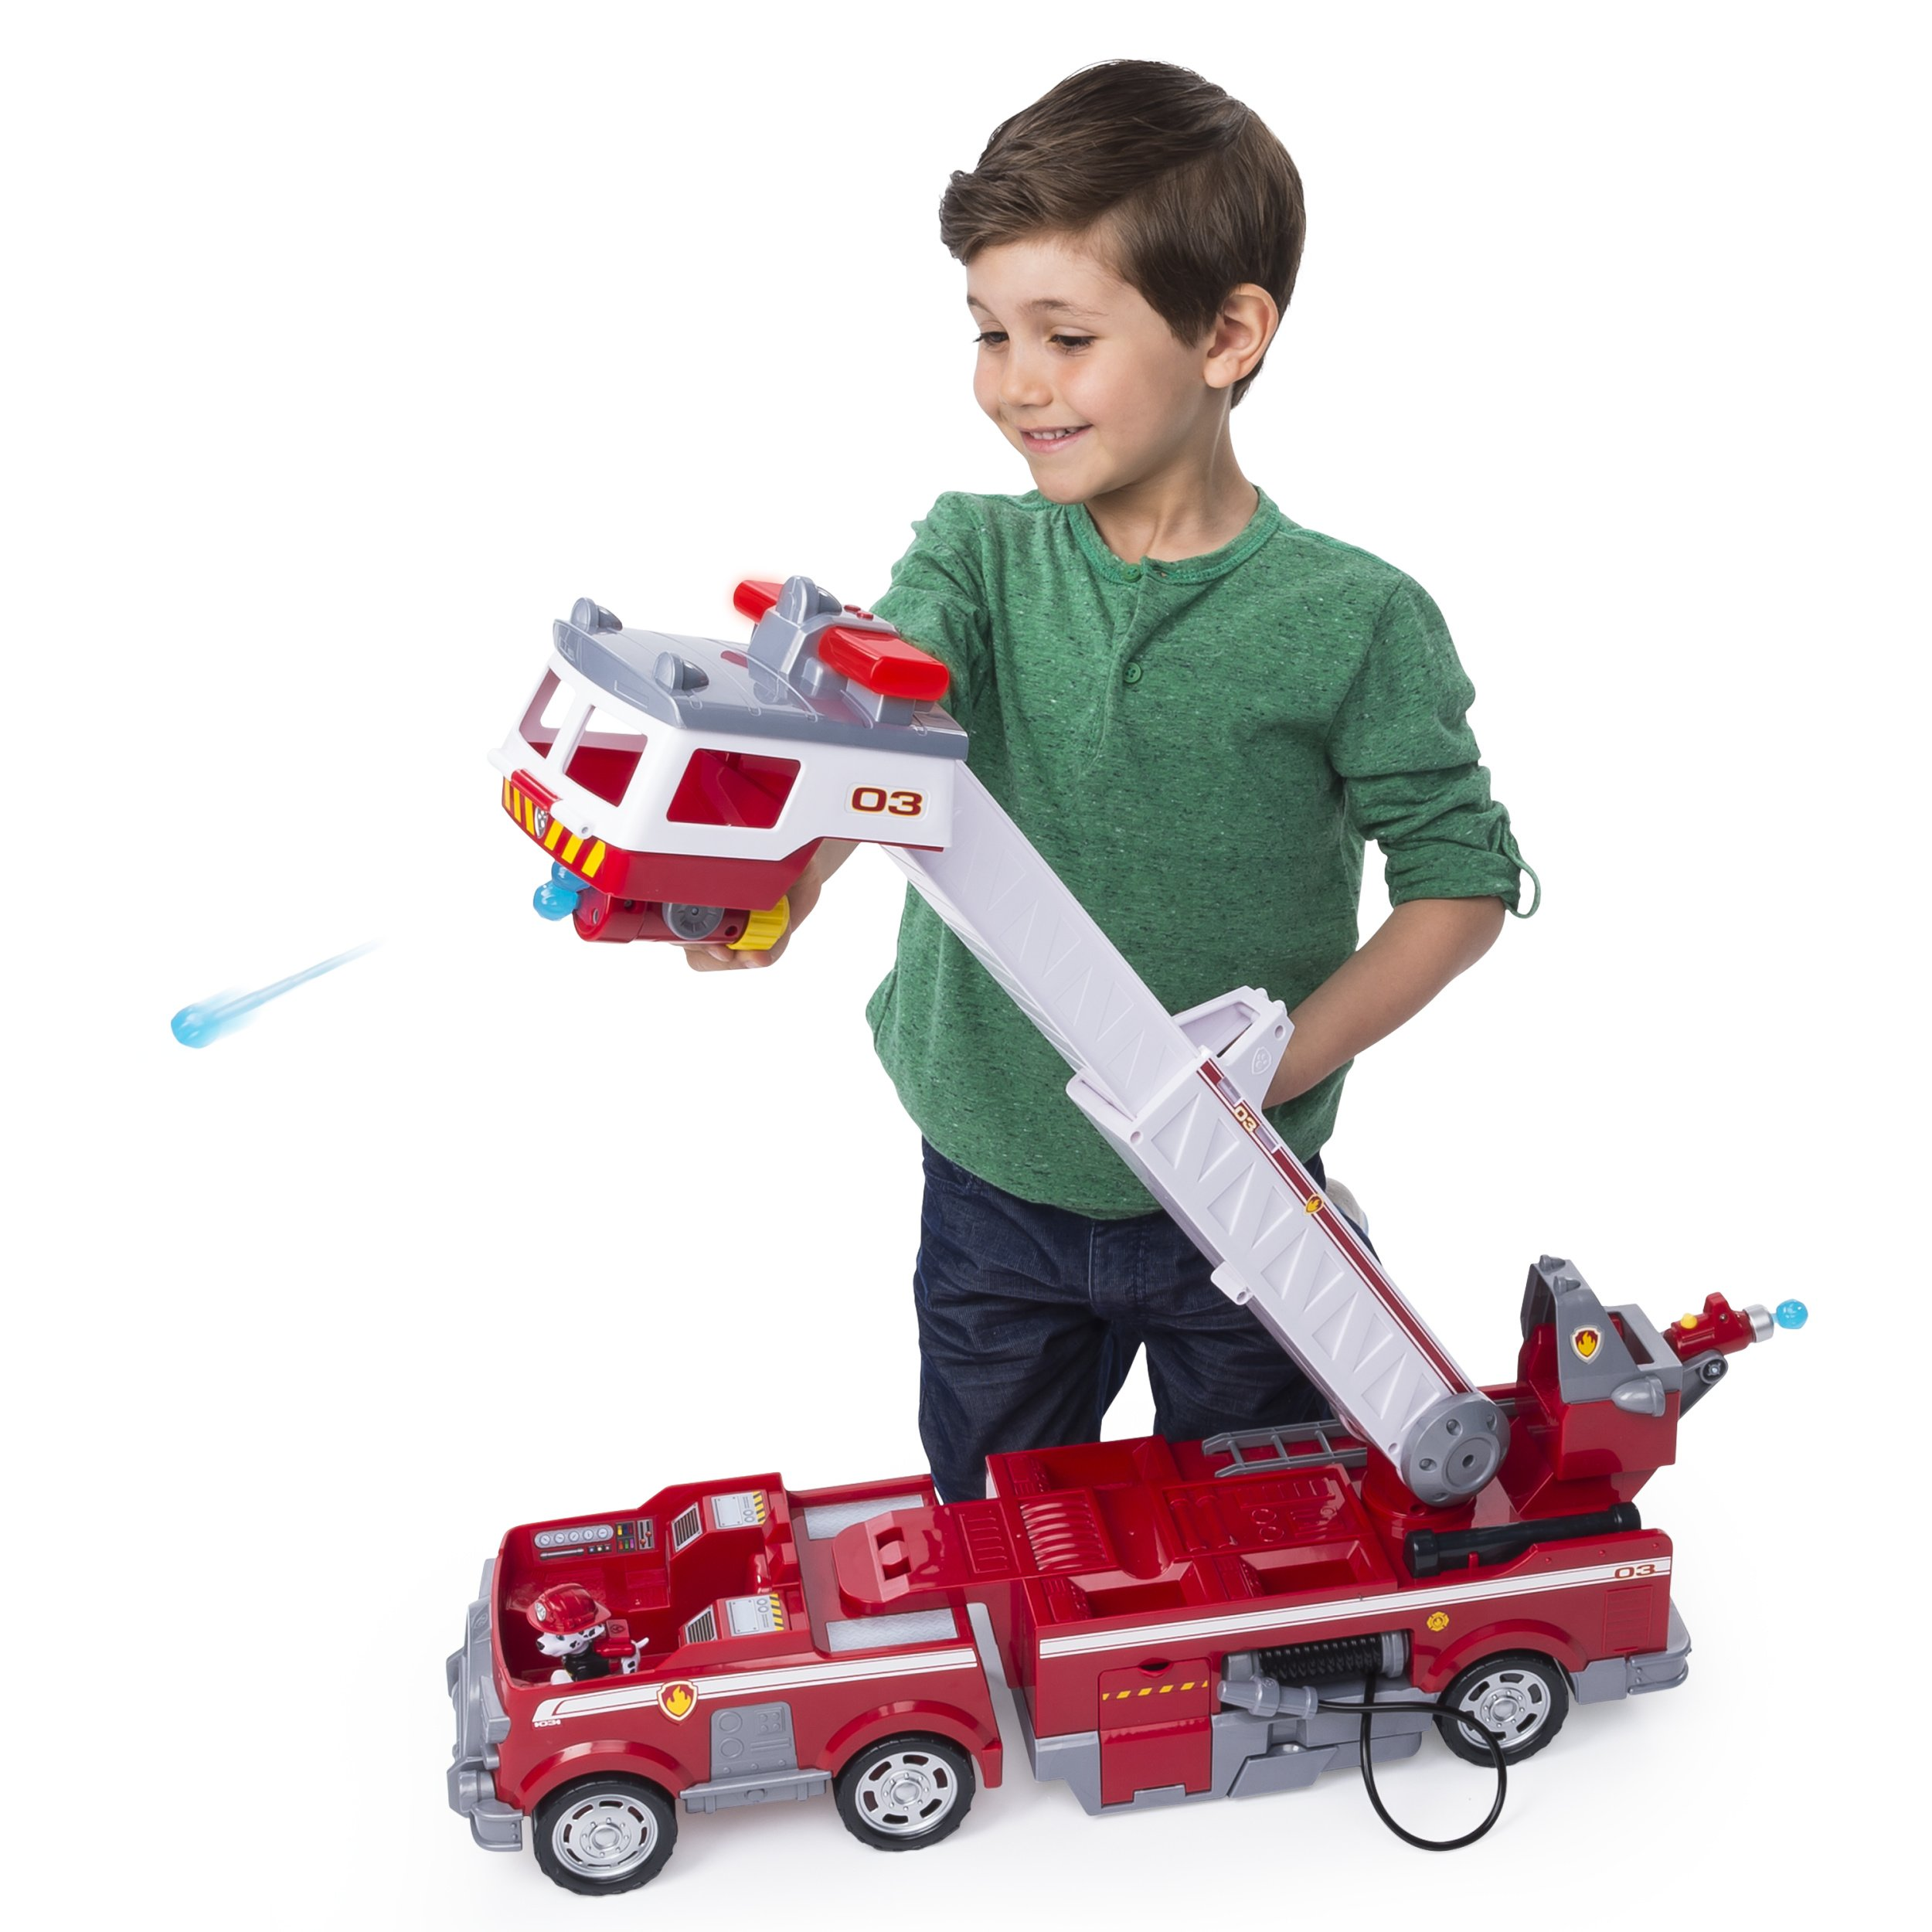 PAW Patrol - Ultimate Rescue Fire Truck with Extendable 2 ft. Tall Ladder, for Ages 3 and Up by Paw Patrol (Image #3)